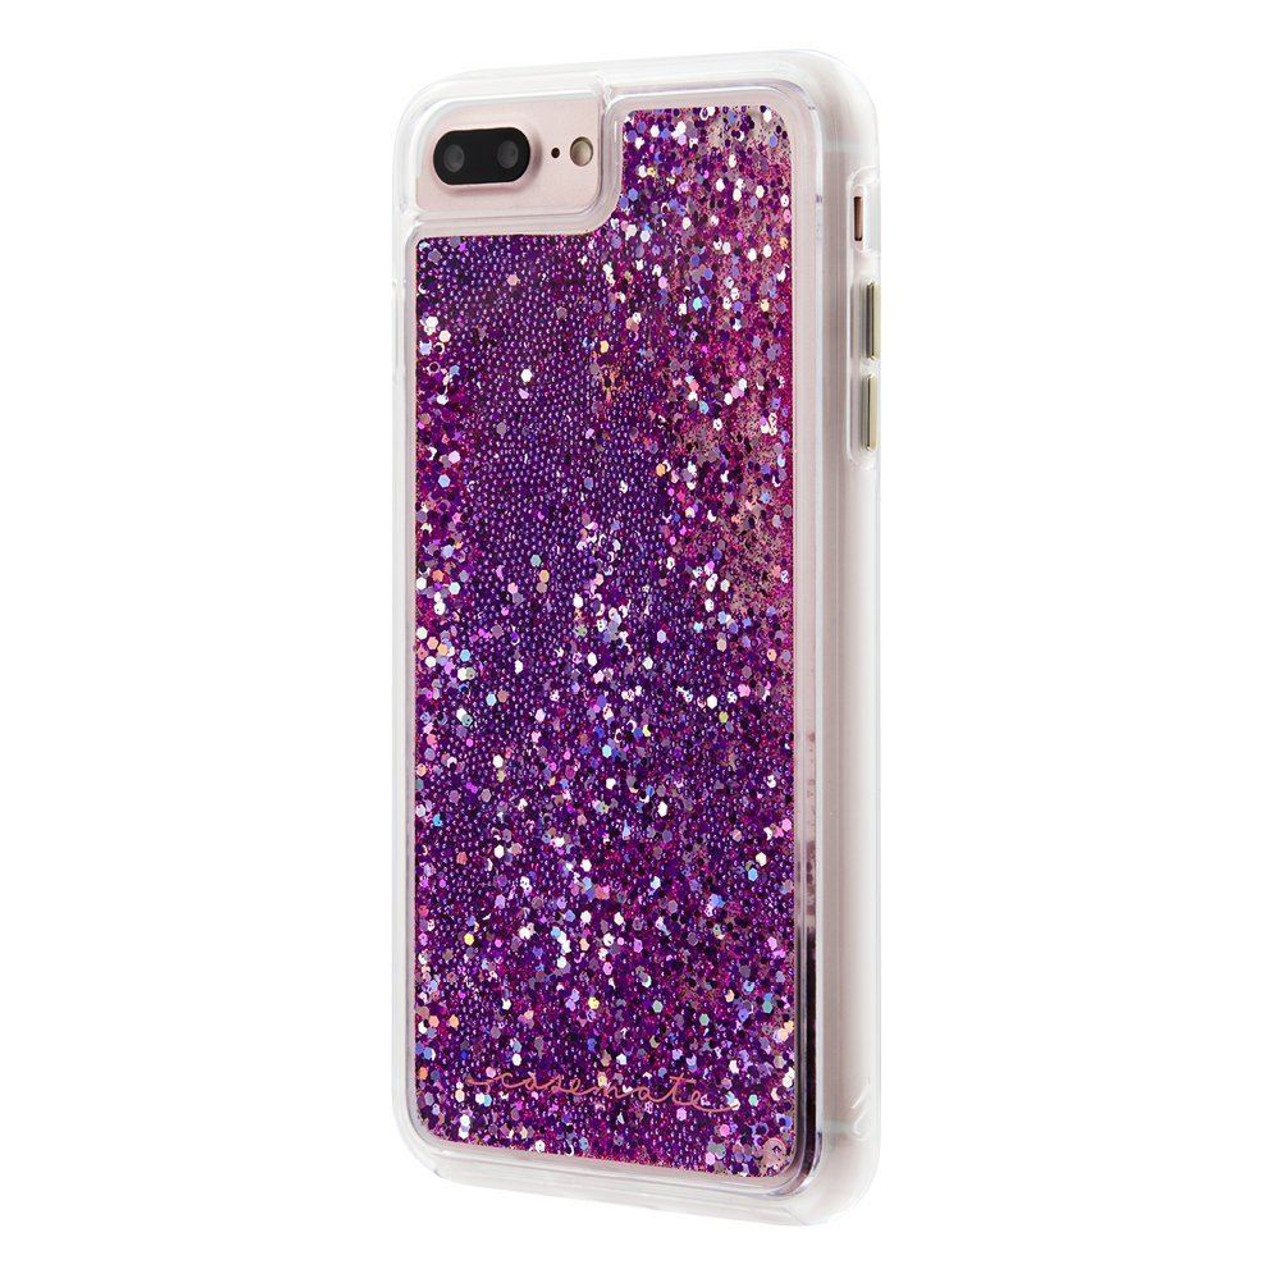 timeless design 38931 ca36f Case-Mate Waterfall Glitter Case For iPhone 8 Plus / 7 Plus / 6 Plus -  Magenta